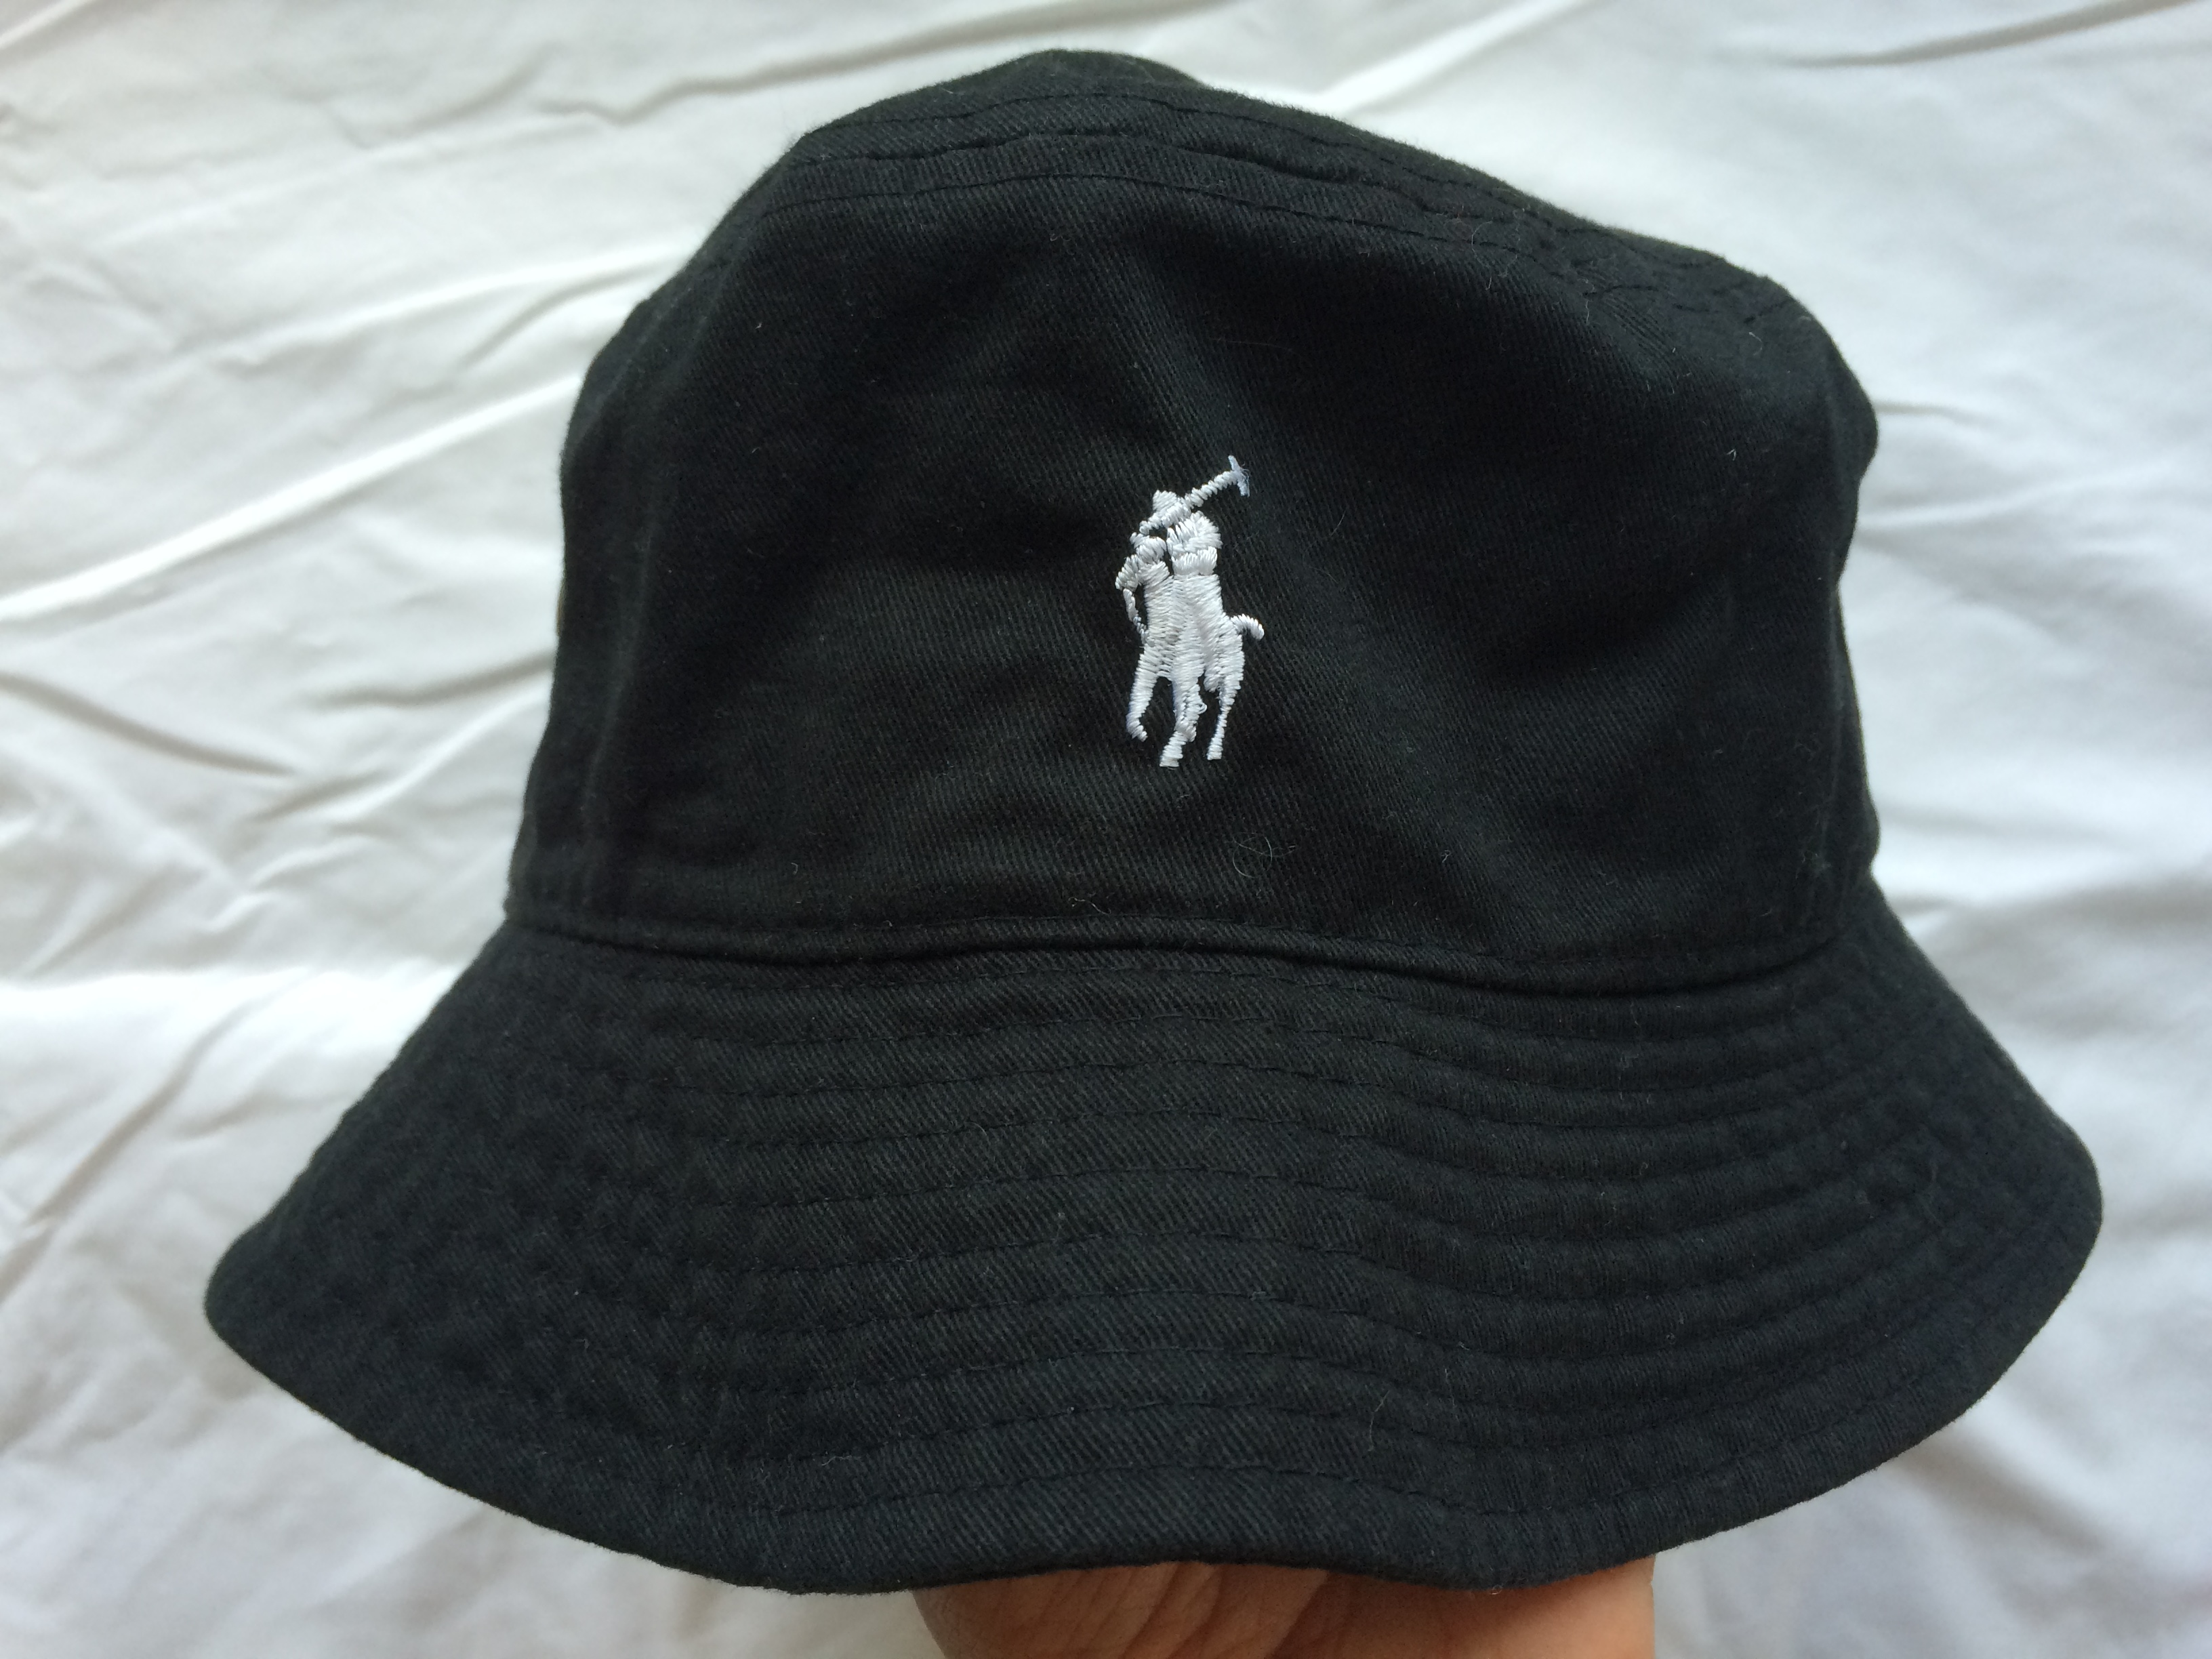 0923313119ce7 Polo Ralph Lauren Vintage Black Polo Bucket Hat Size one size - Hats ...